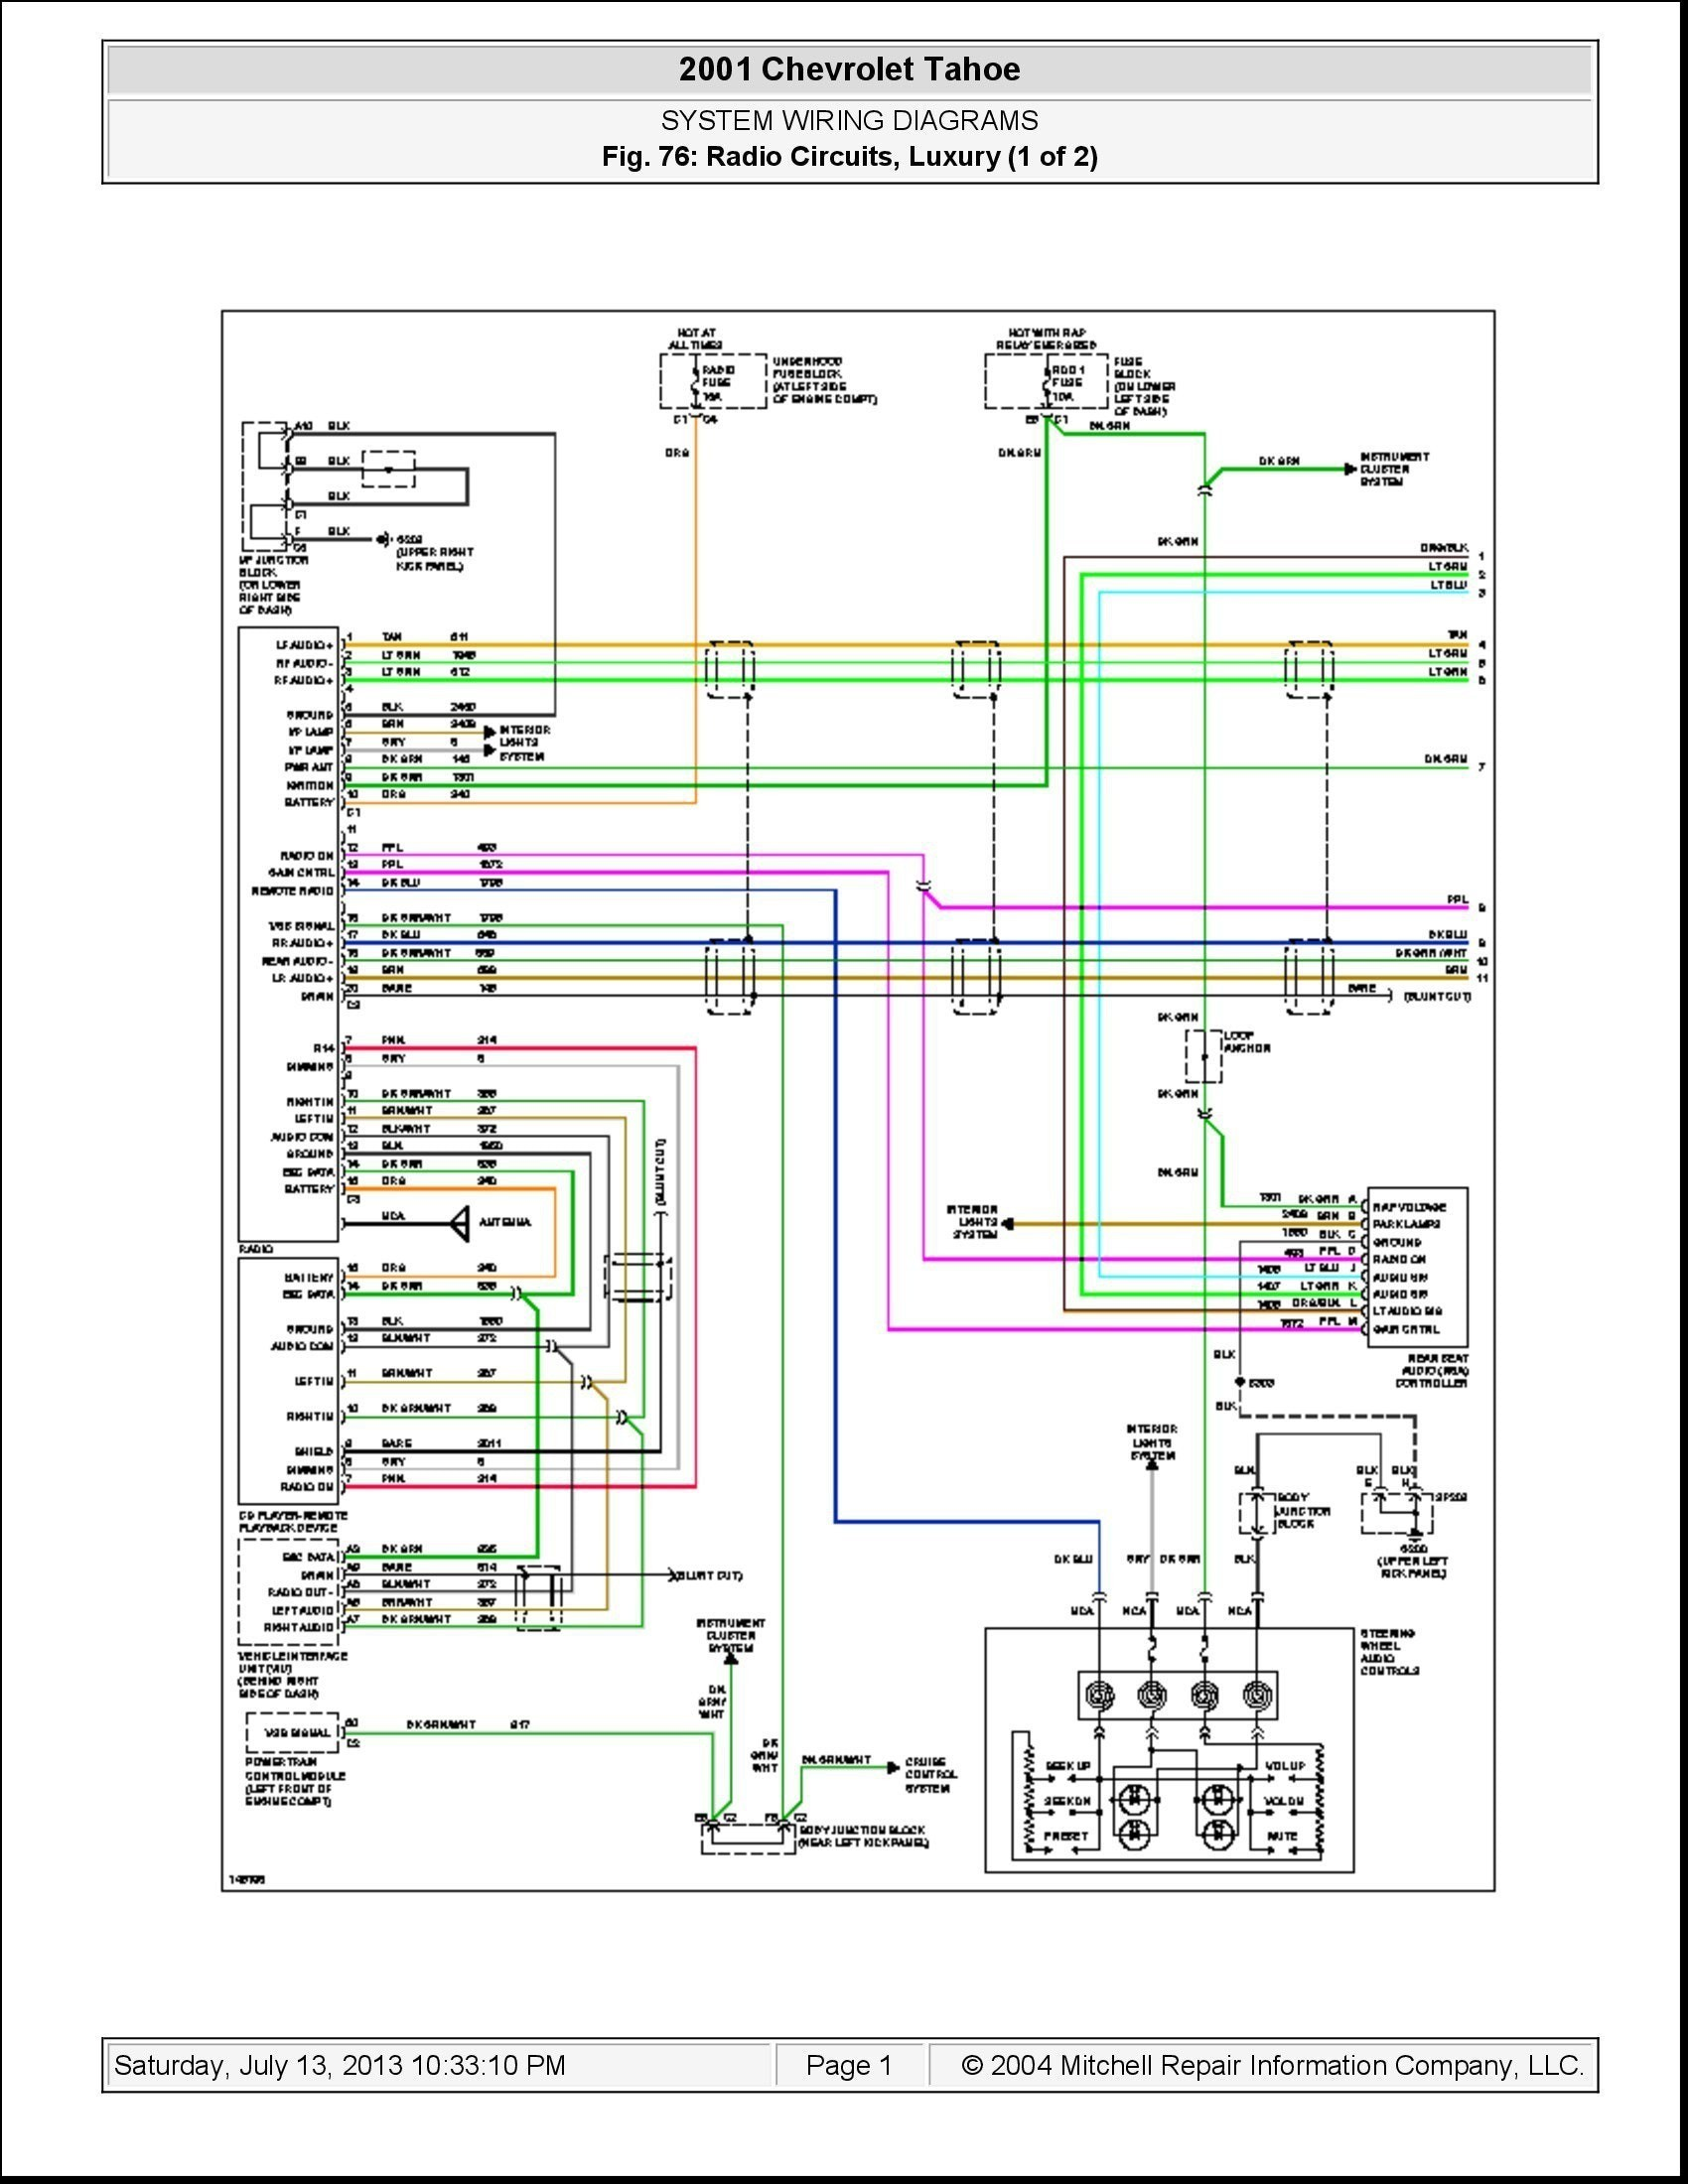 2002 chevy 1500 wiring diagram - wiring diagram van-update -  van-update.lechicchedimammavale.it  lechicchedimammavale.it